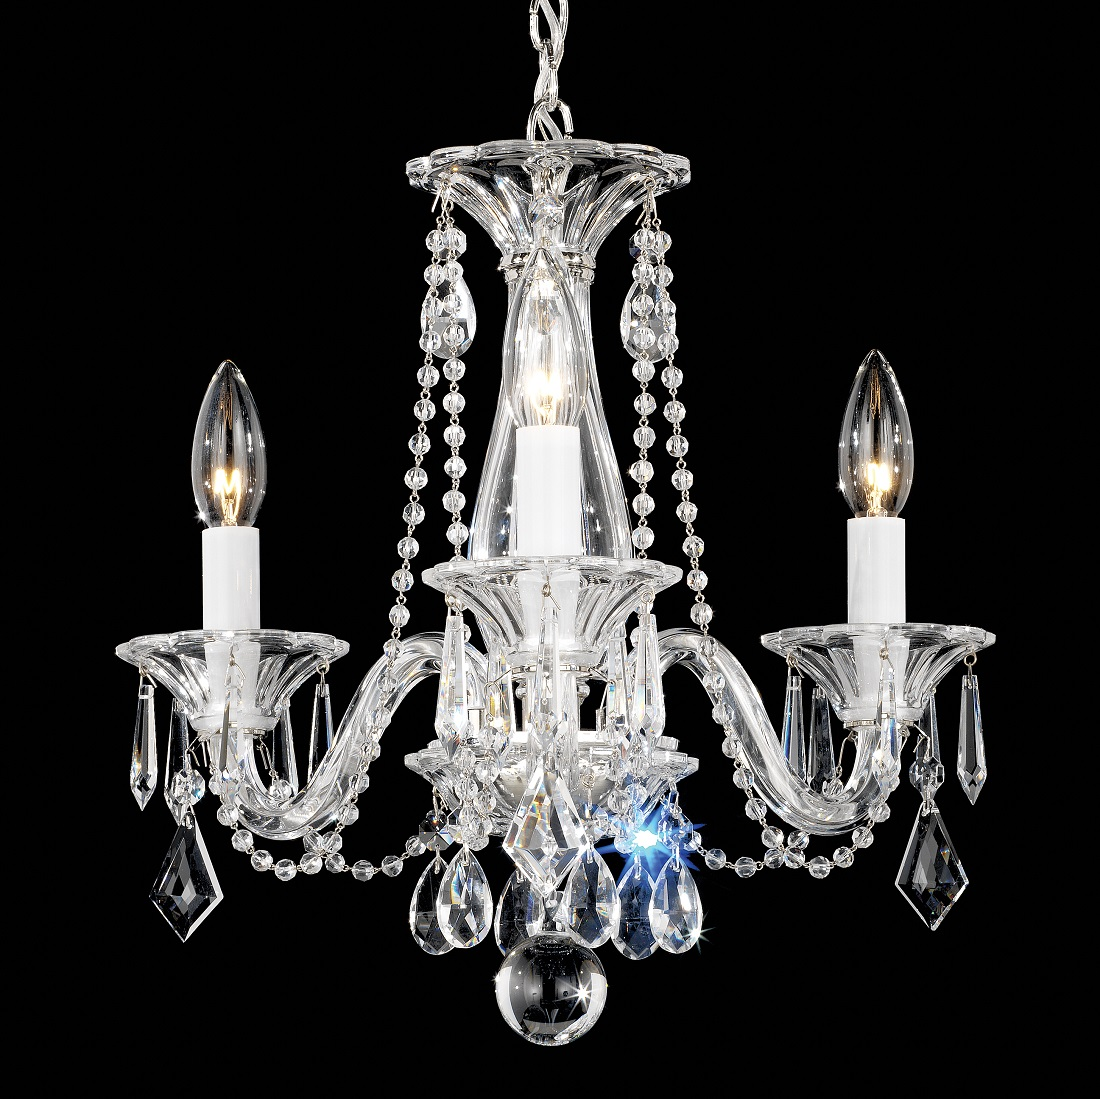 Schonbek Allegro 6993 Contemporary Classic Chandeliers Brooklyn, New York - Accentuations